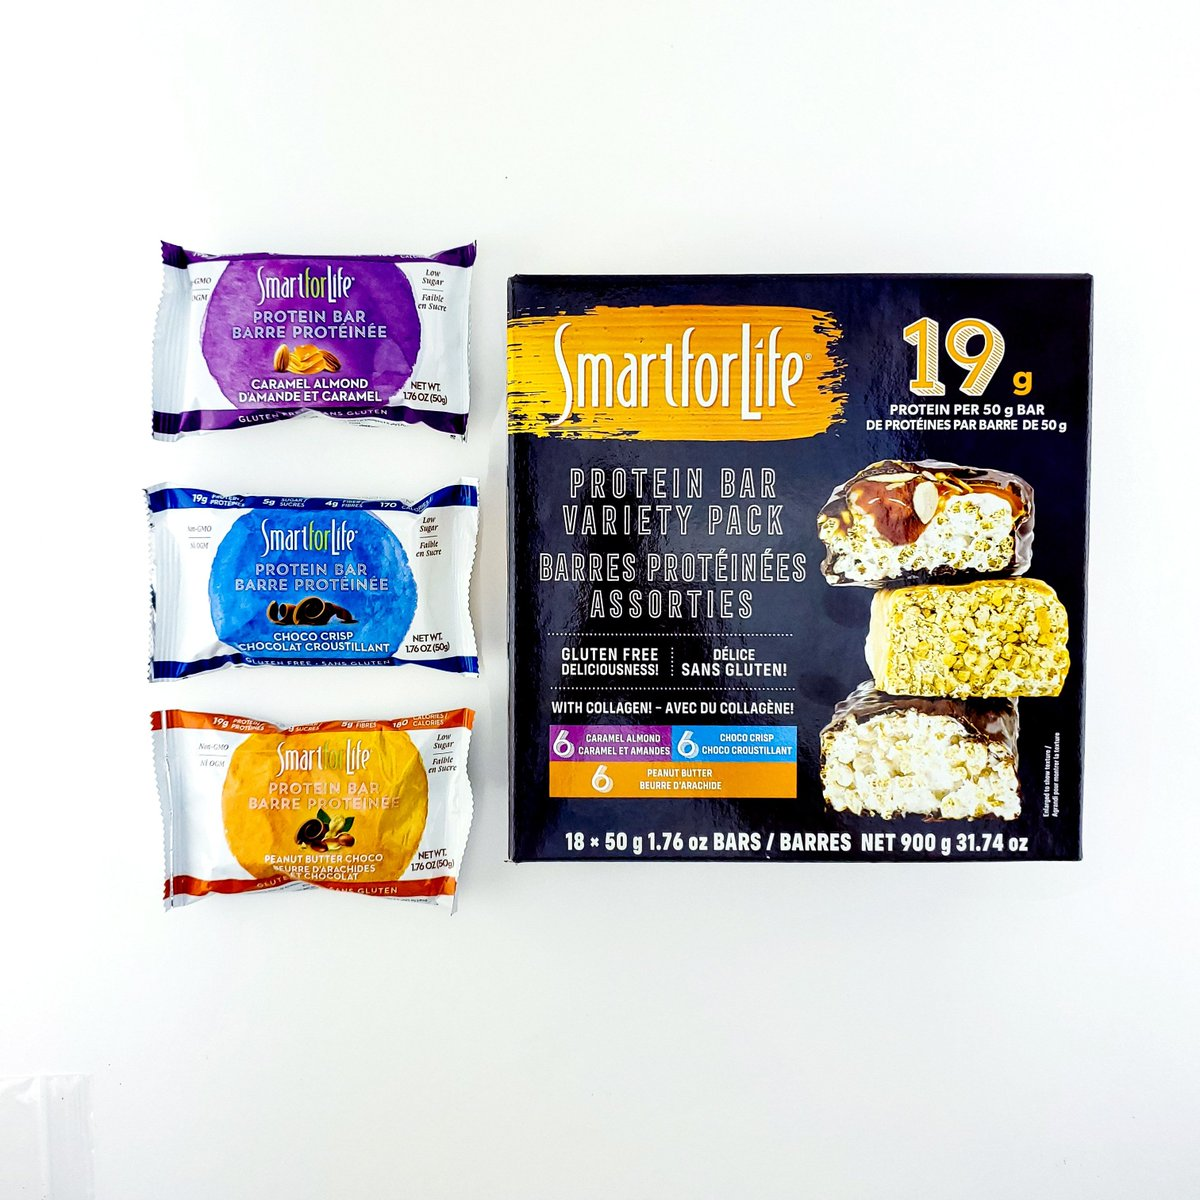 Check out our new 18 Count Variety Box! https://t.co/0FILZGk2rc https://t.co/rIPfYtay1u